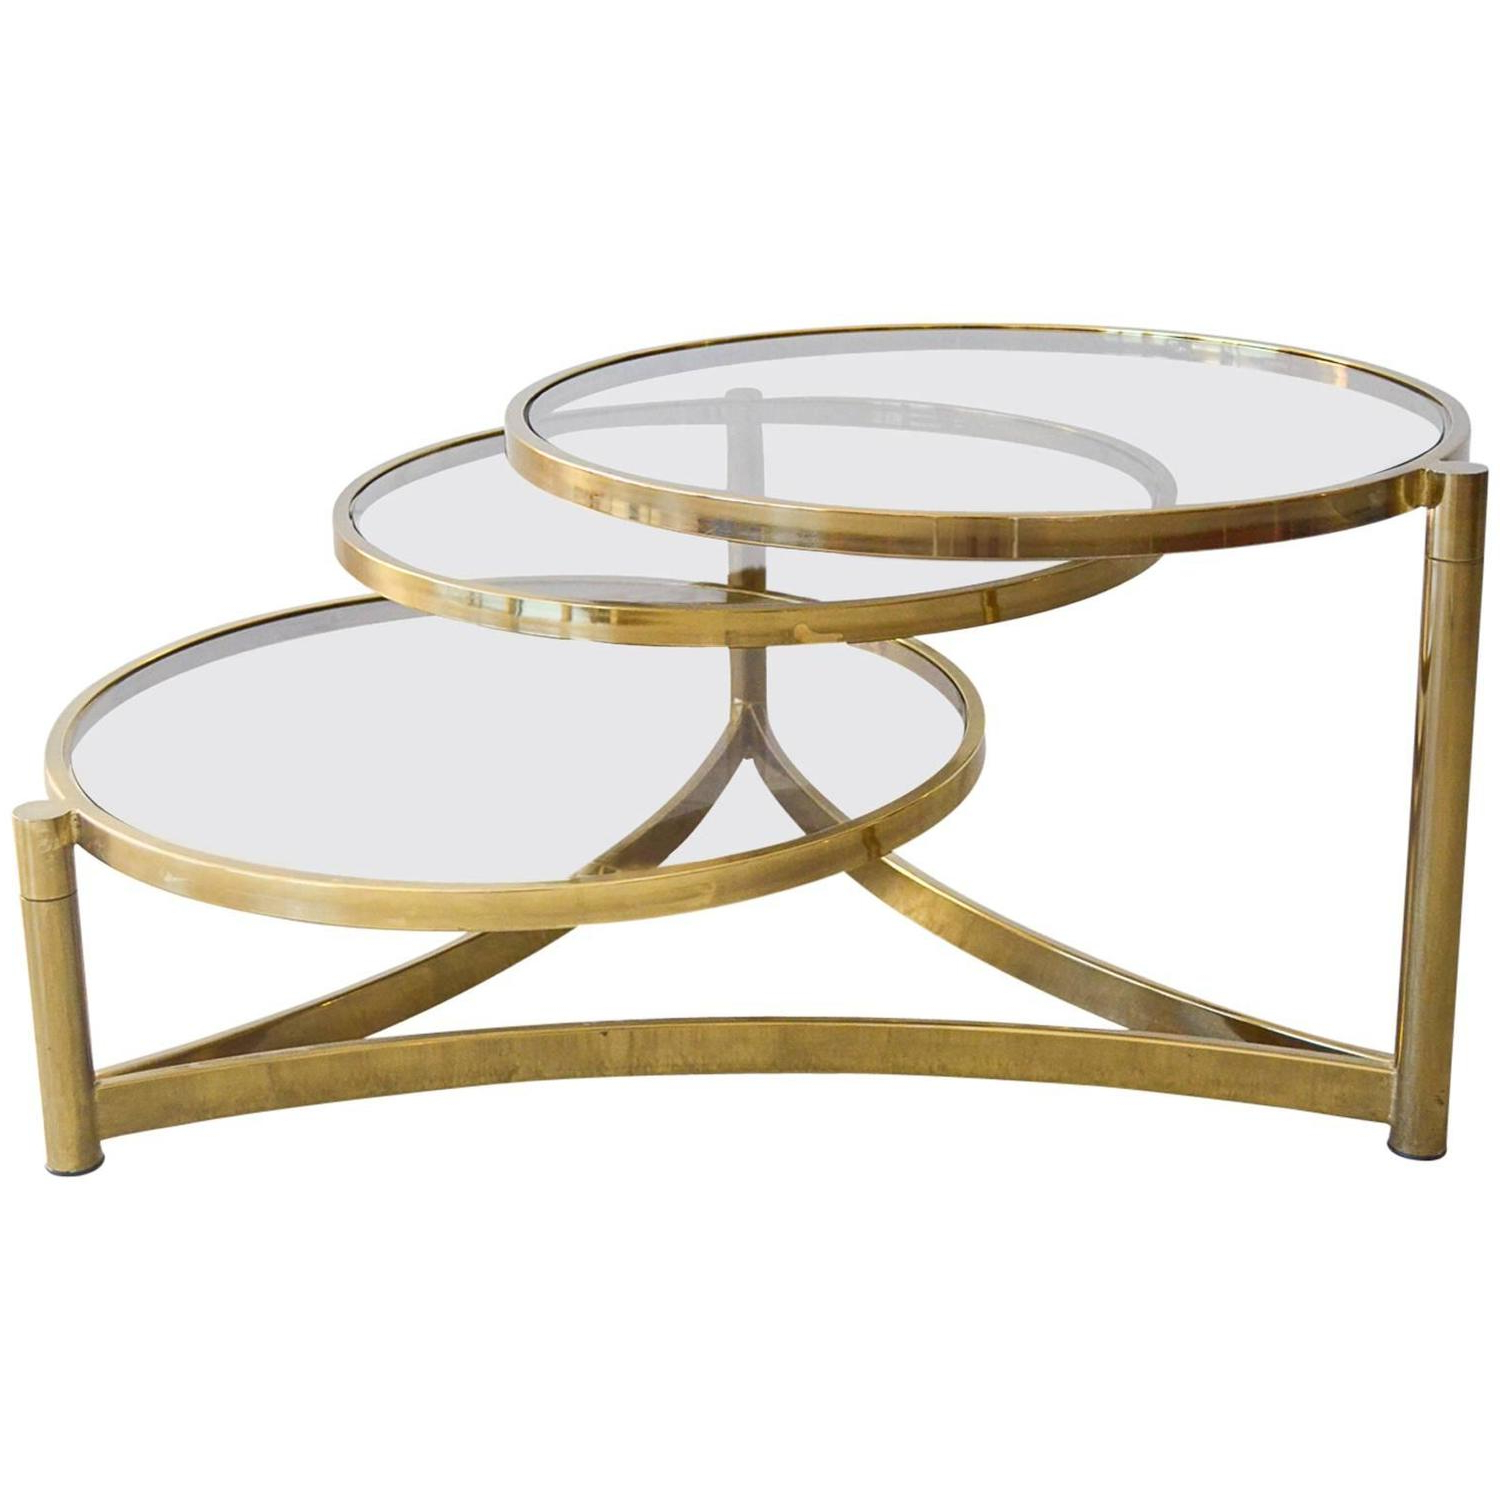 Acrylic Glass And Brass Coffee Tables Pertaining To Favorite Modern File Cabinet : The Perfect Real Round Brass End Table Images (View 7 of 20)